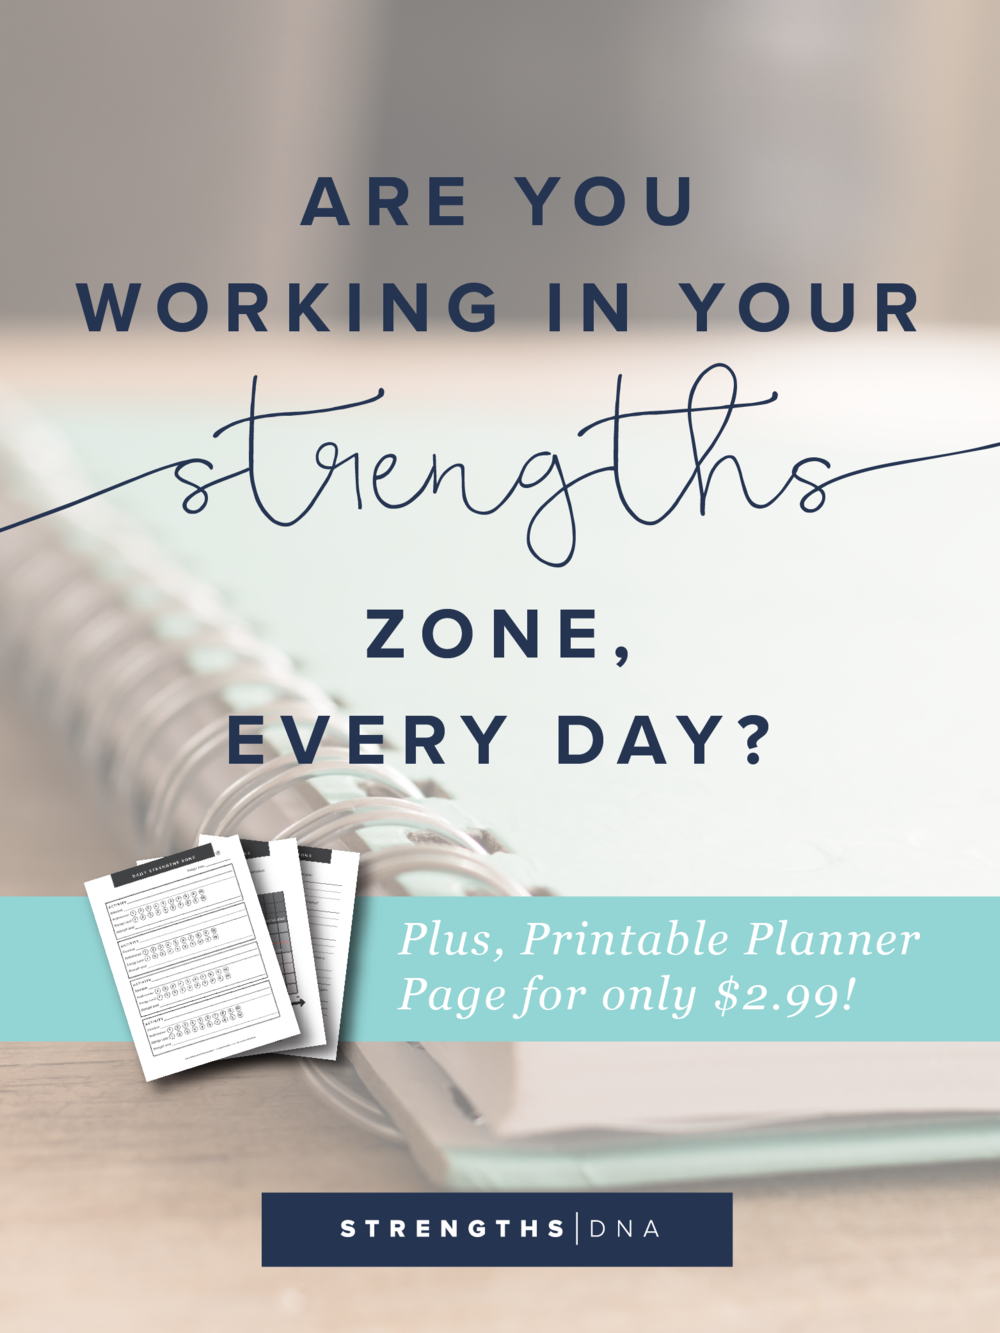 Are you working in your strengths zone, every day? Plus a free printable planner for only $2.99